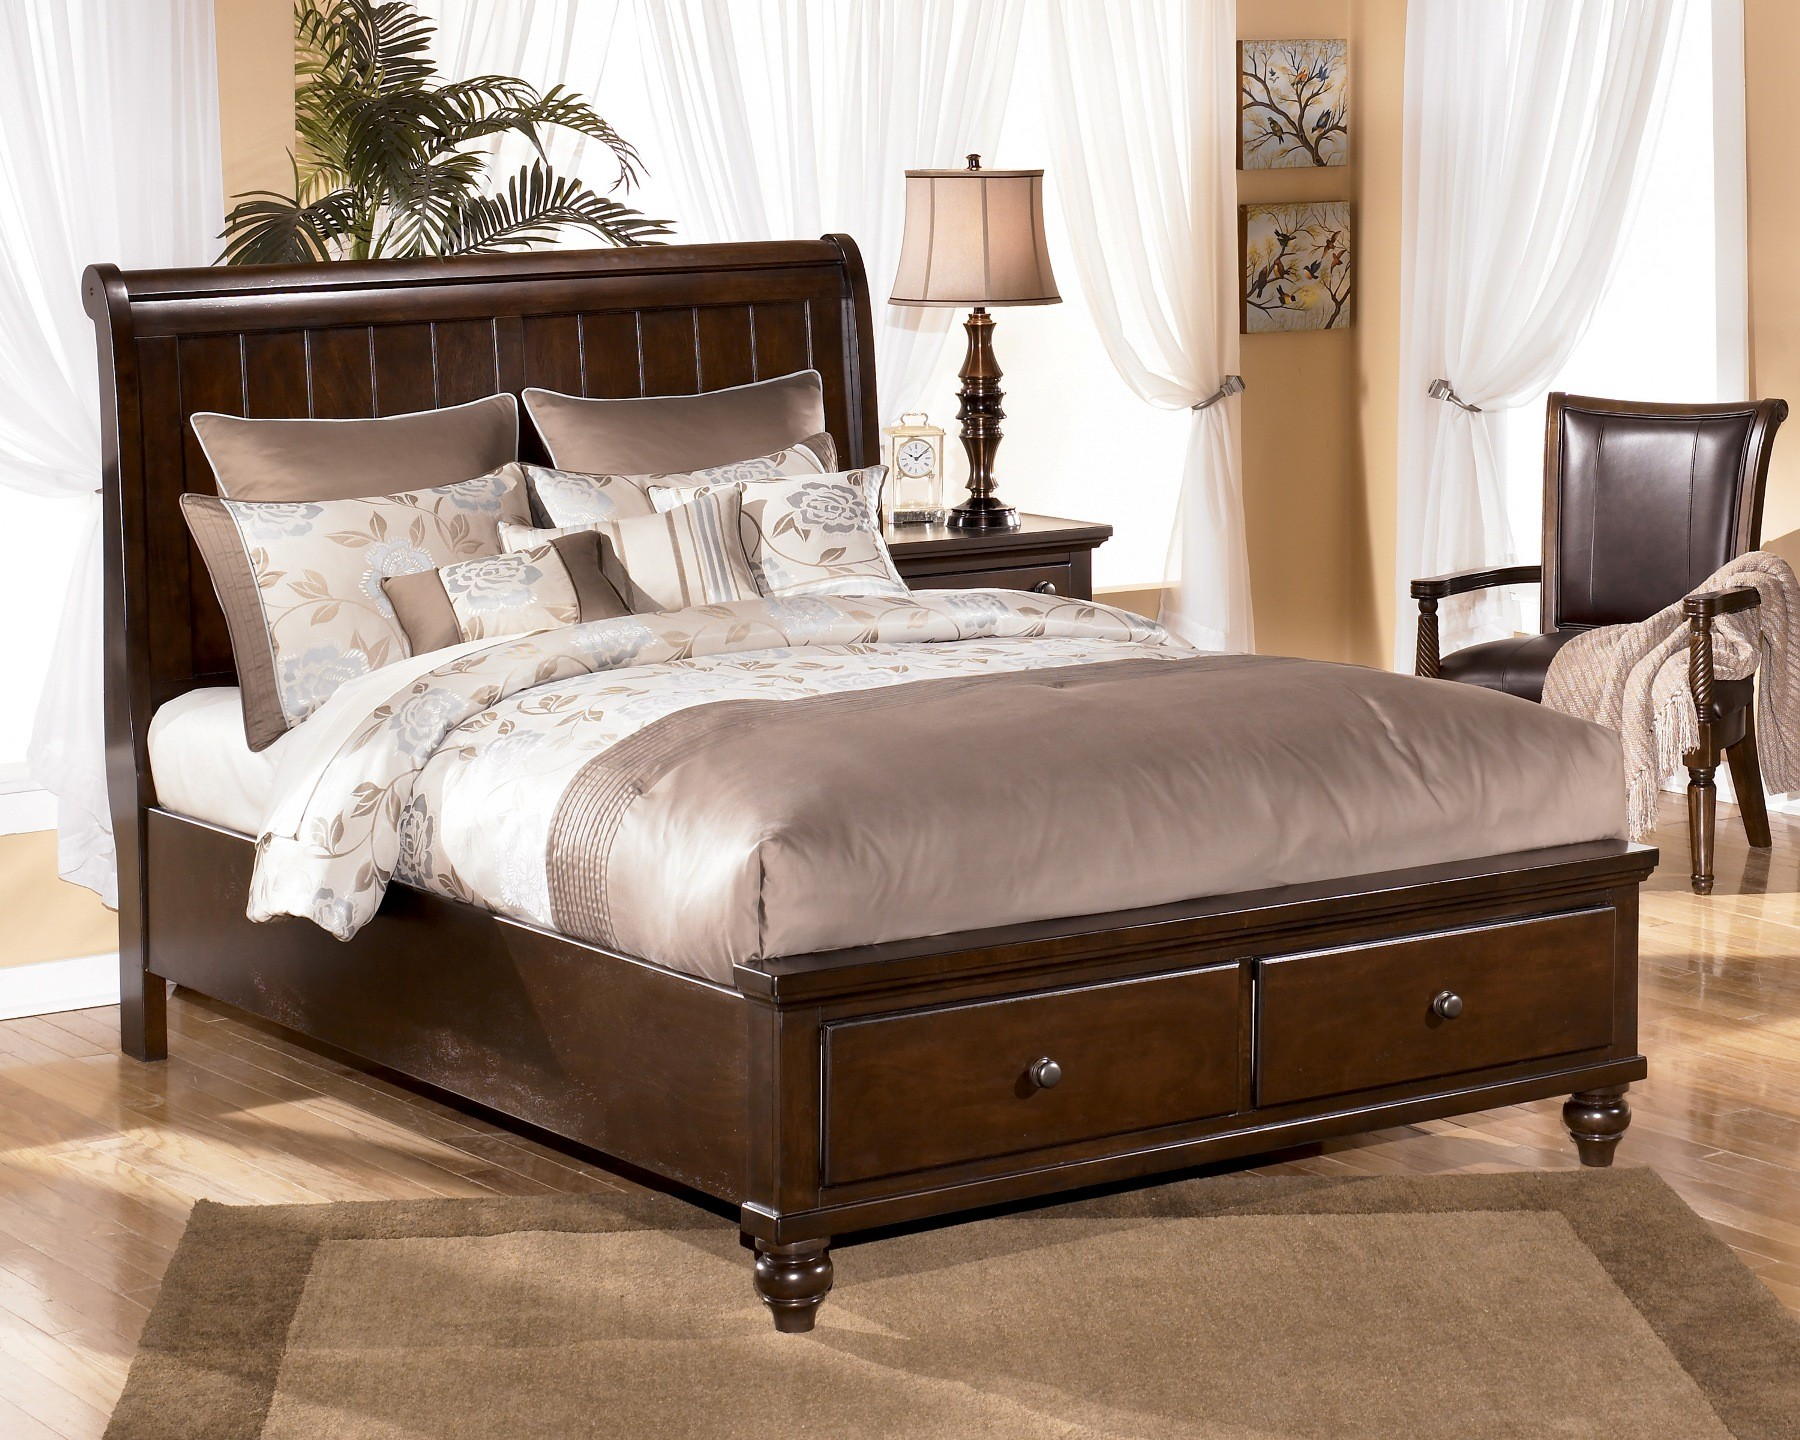 692 Signature Design By Ashley Camdyn Sleigh Bed 866 594 6890